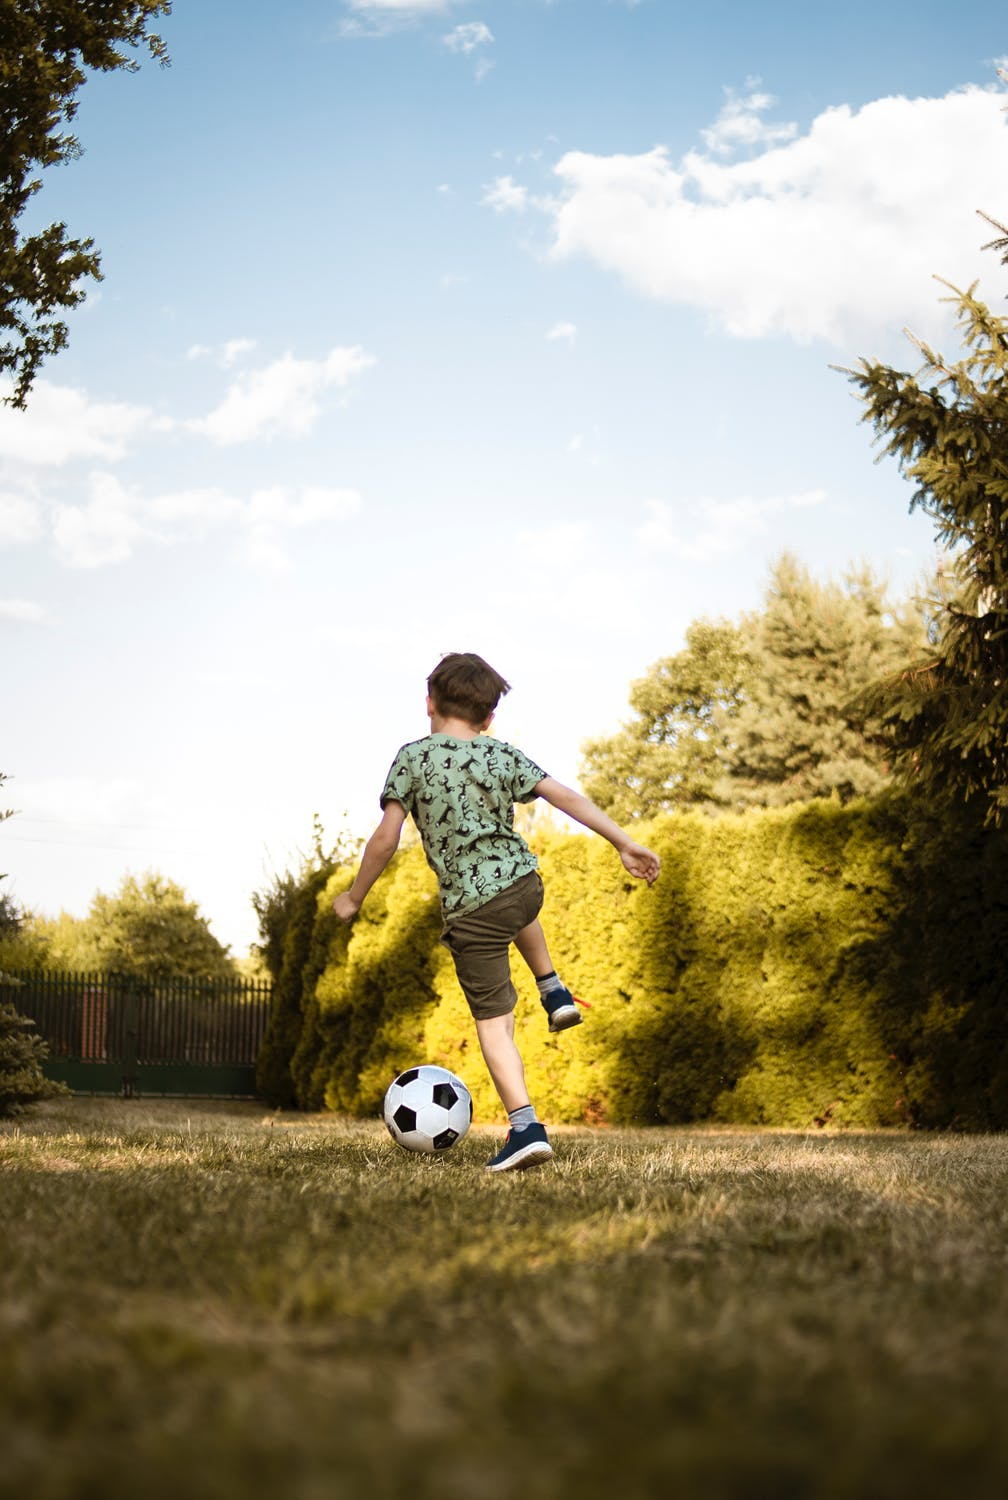 Benefits of Team Sports for Kids